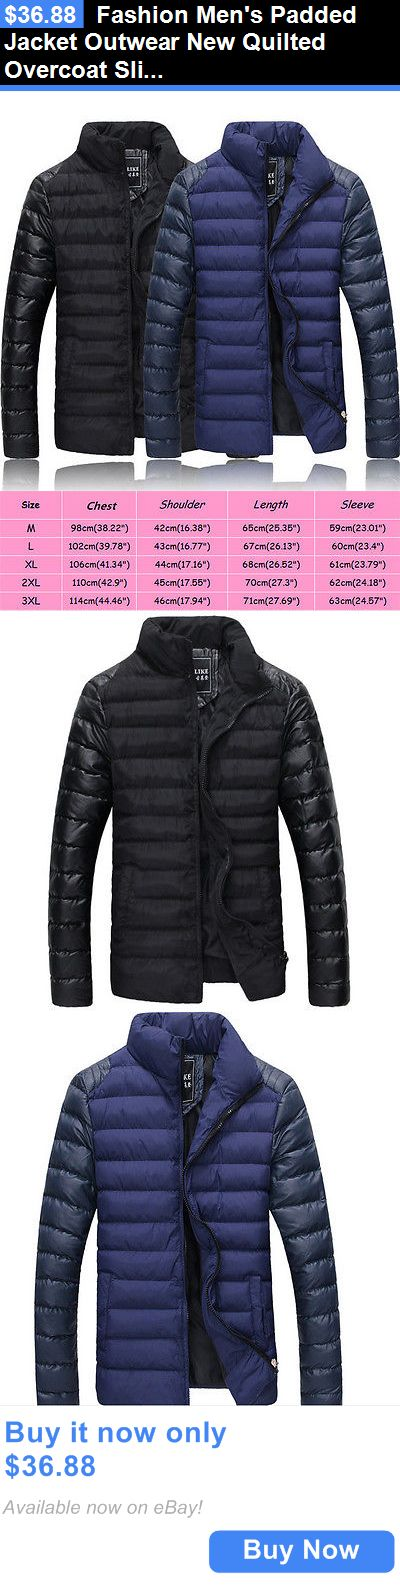 Men Coats And Jackets: Fashion Mens Padded Jacket Outwear New Quilted Overcoat Slim Bubble Warm Coat BUY IT NOW ONLY: $36.88